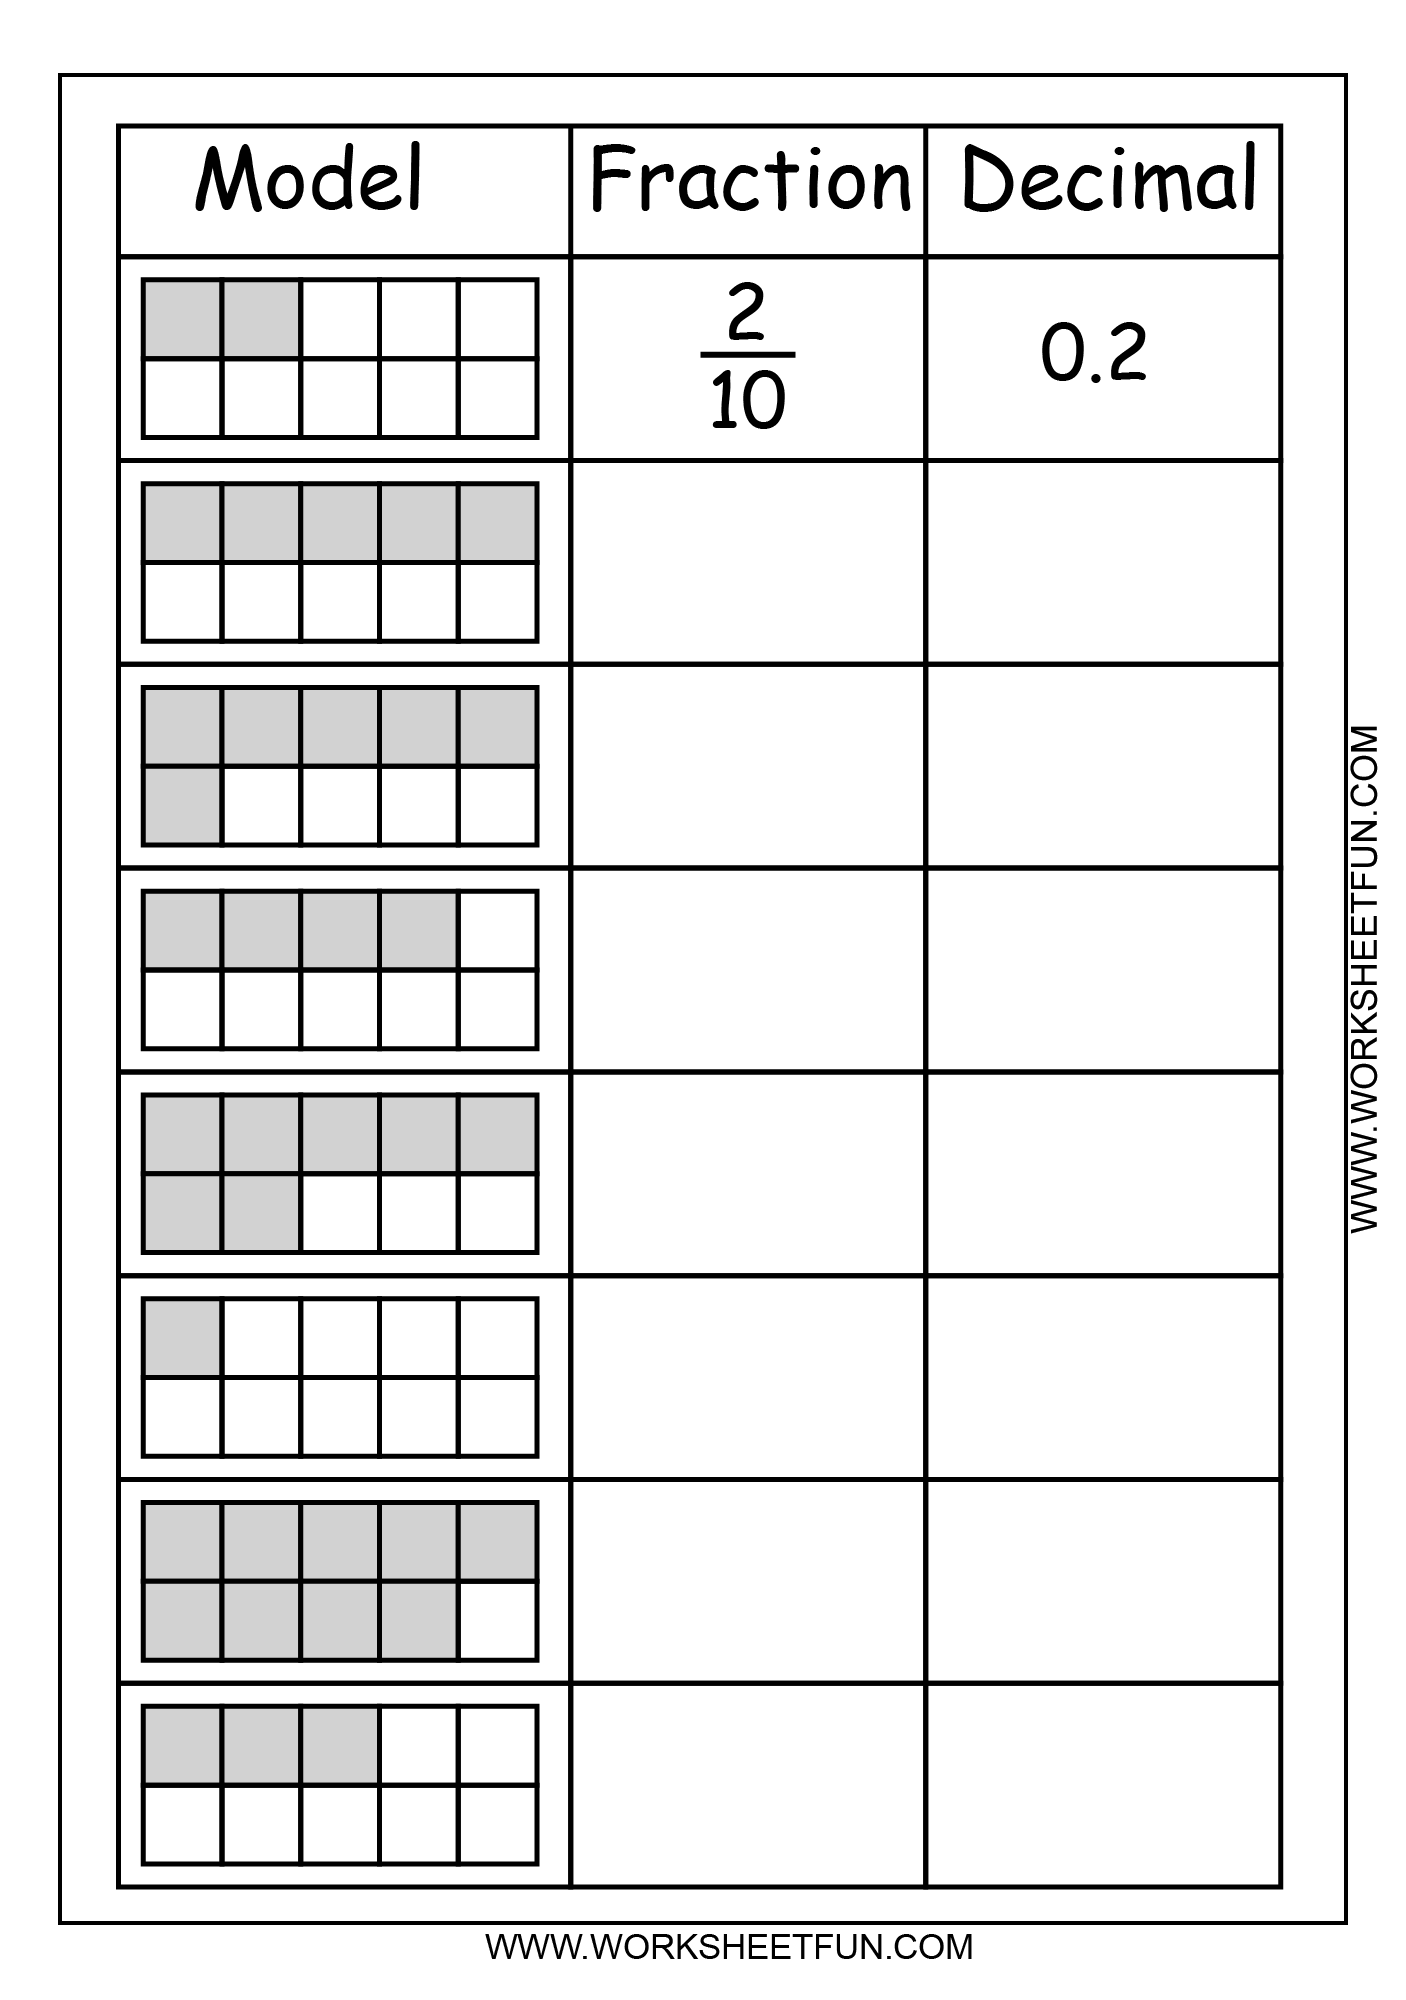 math worksheet : 1000 images about decimal worksheets on pinterest  decimal  : Fractions And Decimals Worksheet